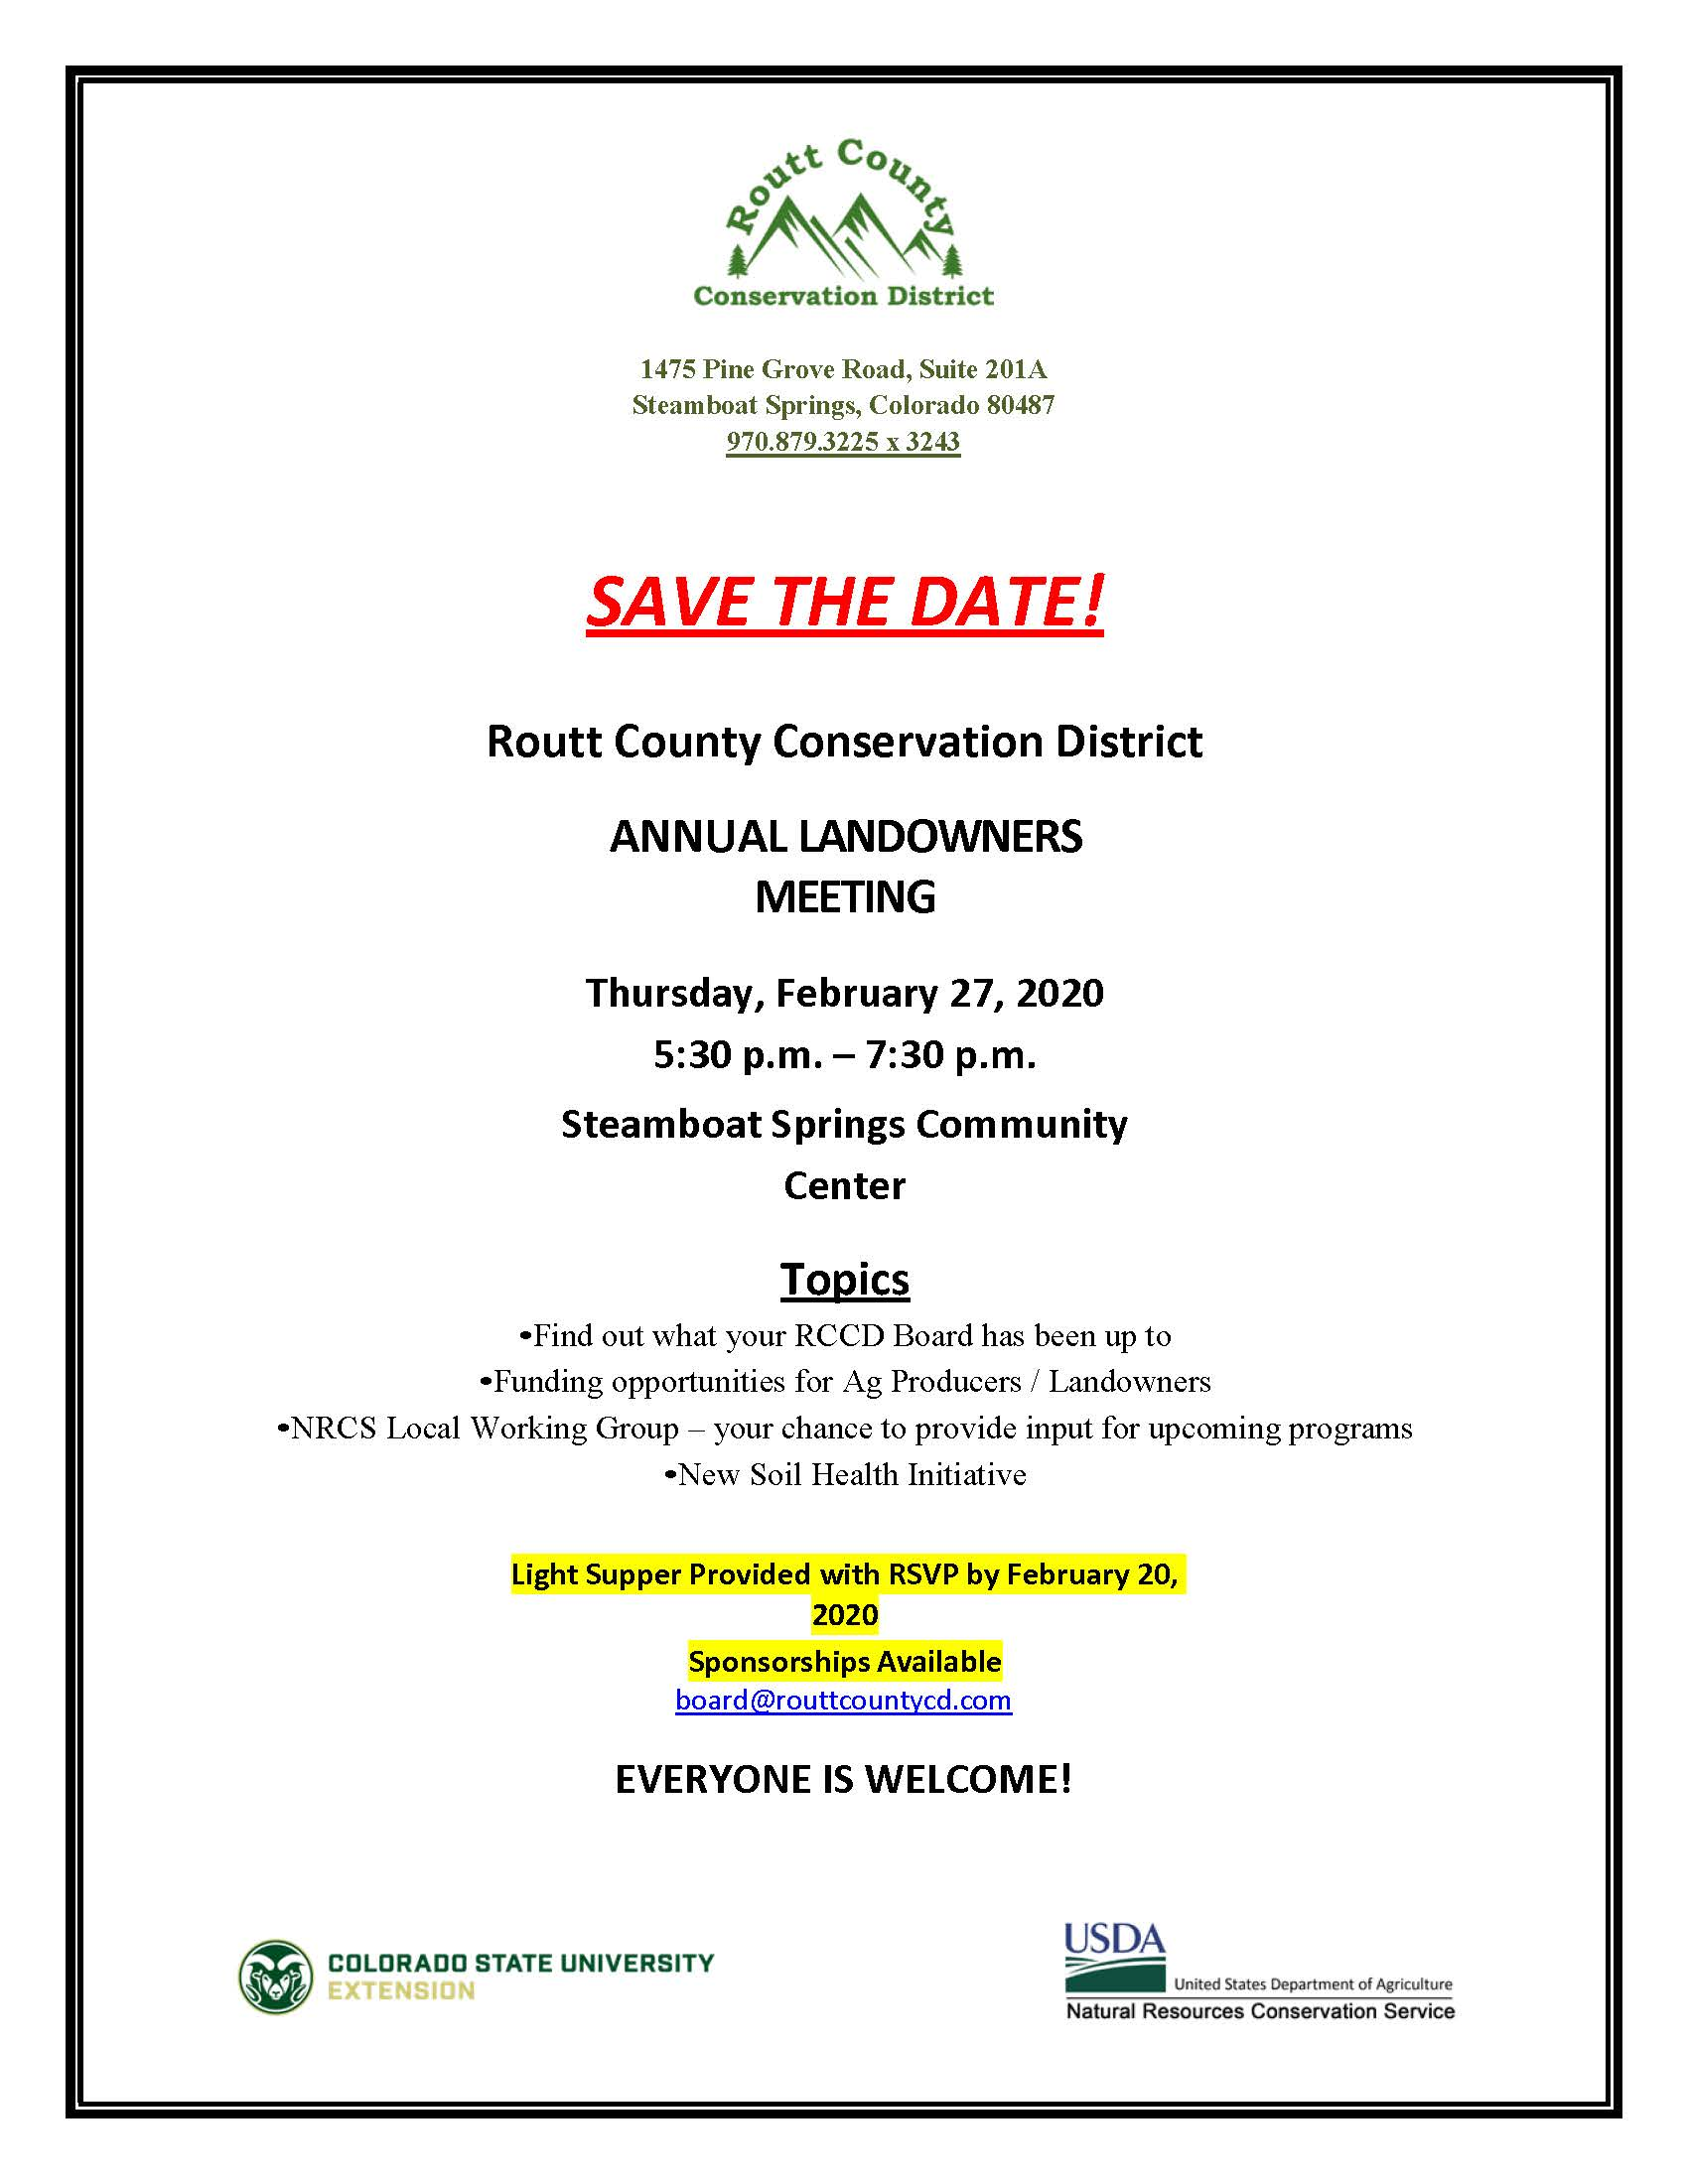 Annual Landowners Meeting